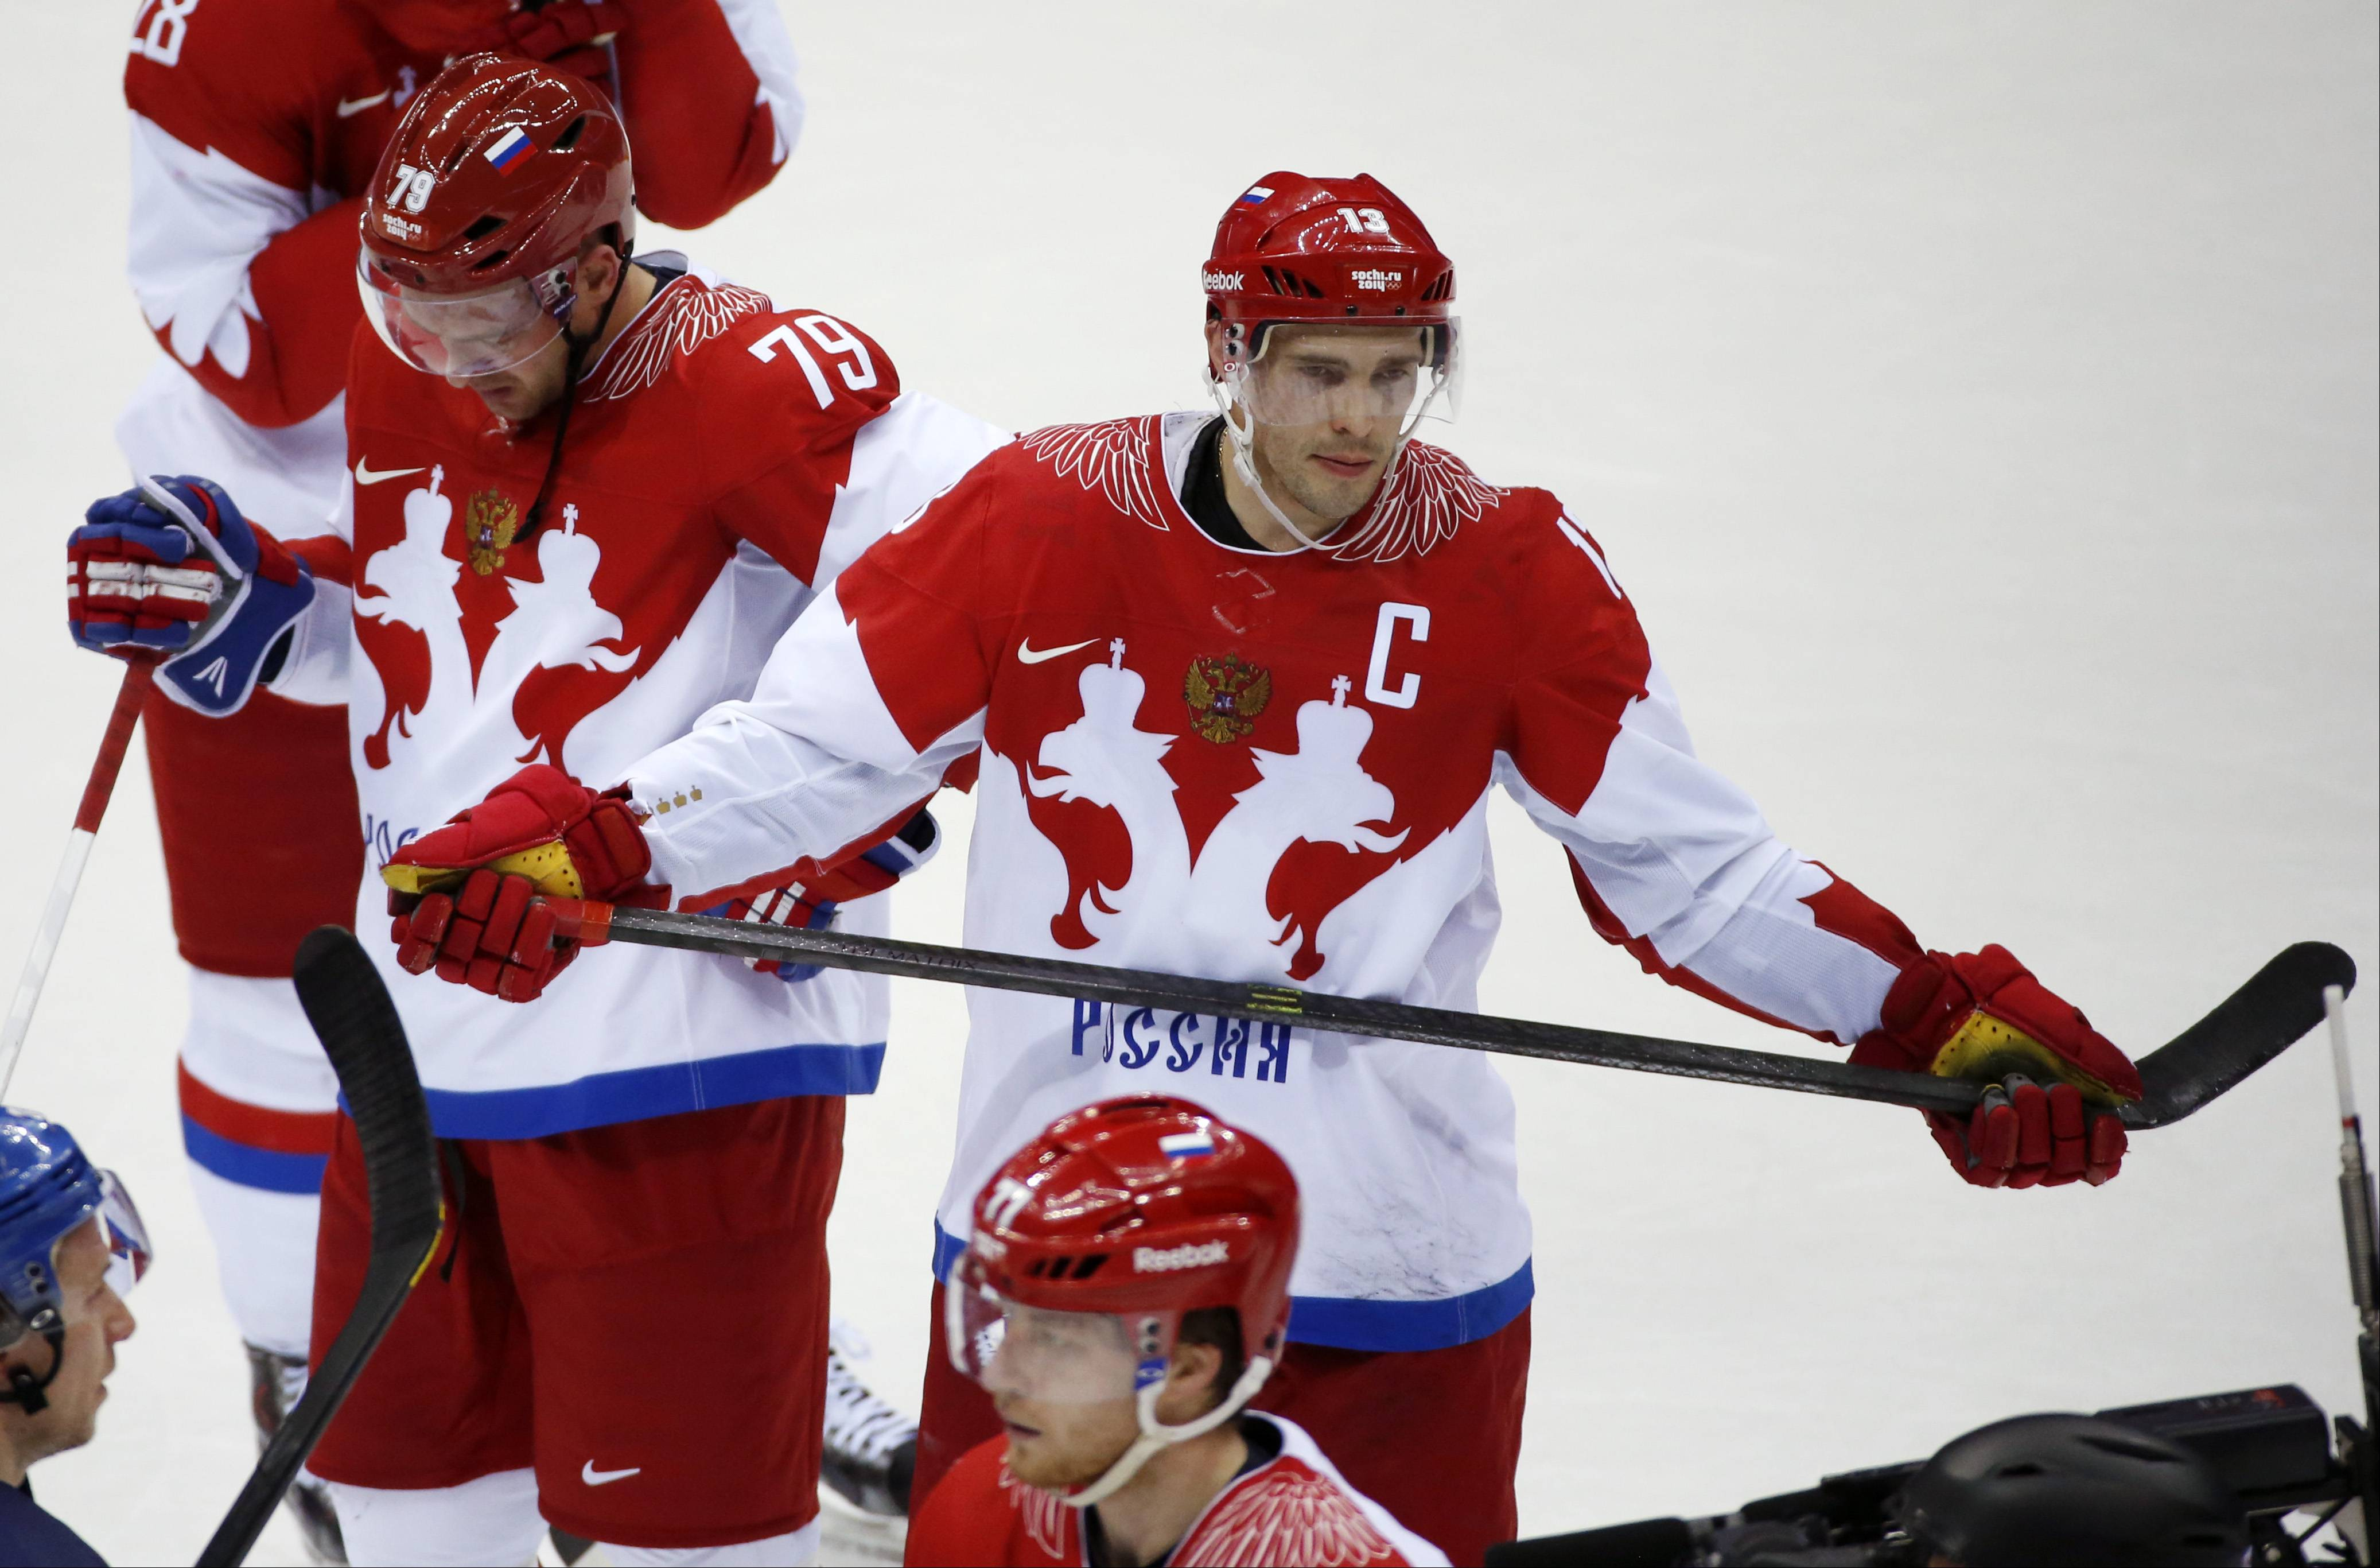 Russia defenseman Andrei Markov, left, and forward Pavel Datsyuk react after Russia lost 3-1 to Finland in a men's quarterfinal ice hockey game at the 2014 Winter Olympics Wednesday.